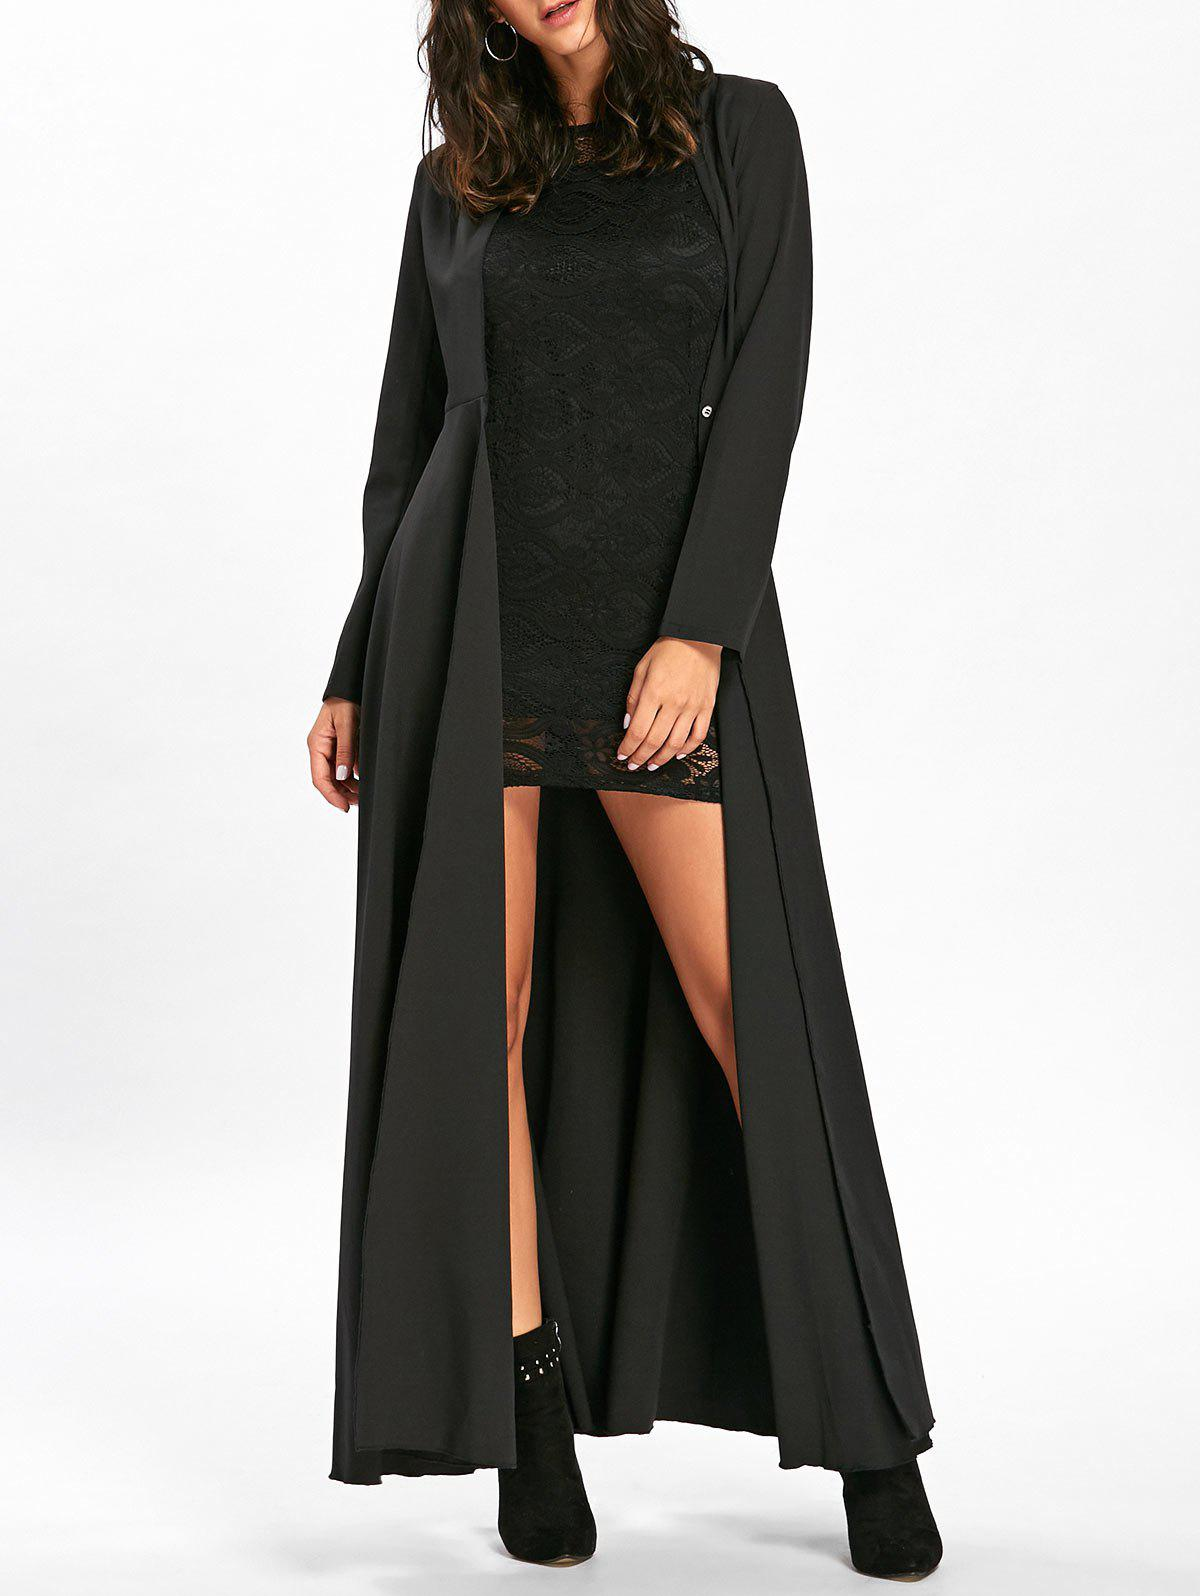 Bodycon Lace Mini Dress with Long CoatWOMEN<br><br>Size: M; Color: BLACK; Clothes Type: Others; Material: Polyester,Spandex; Type: Slim; Shirt Length: Long; Sleeve Length: Full; Sleeve Type: Batwing Sleeve; Collar: Convertible Collar; Pattern Type: Solid; Style: Fashion; Season: Fall,Spring; Weight: 0.5500kg; Package Contents: 1 x Dress   1 x Coat;